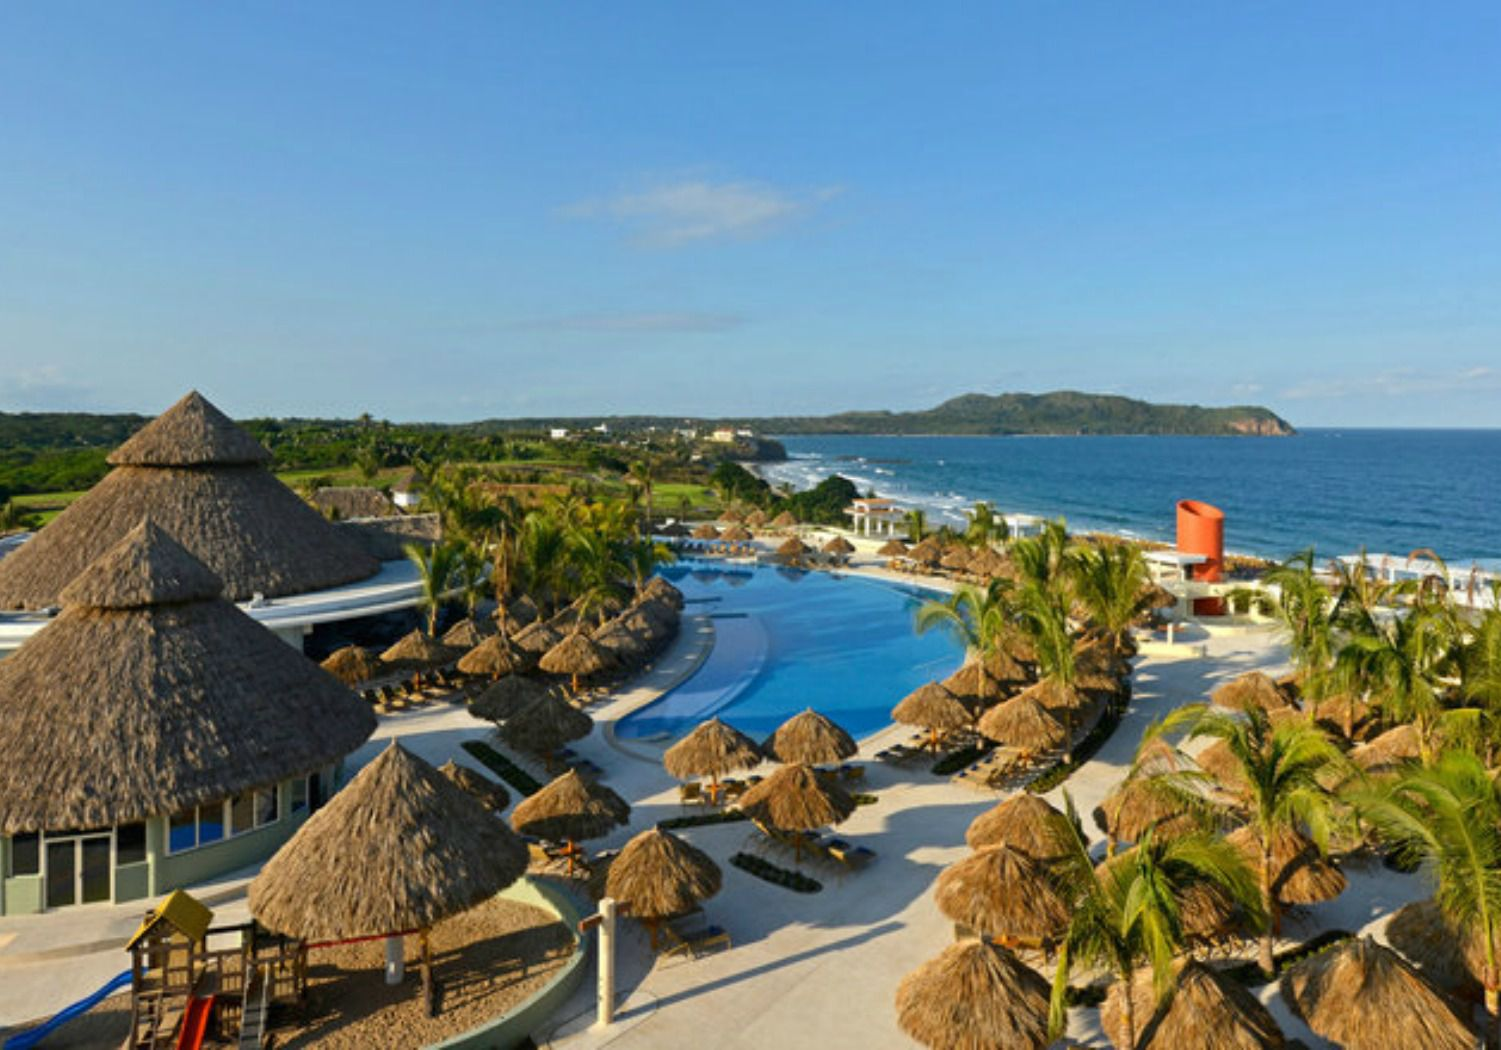 6 best value all inclusive resorts for families for Luxury all inclusive resorts for families